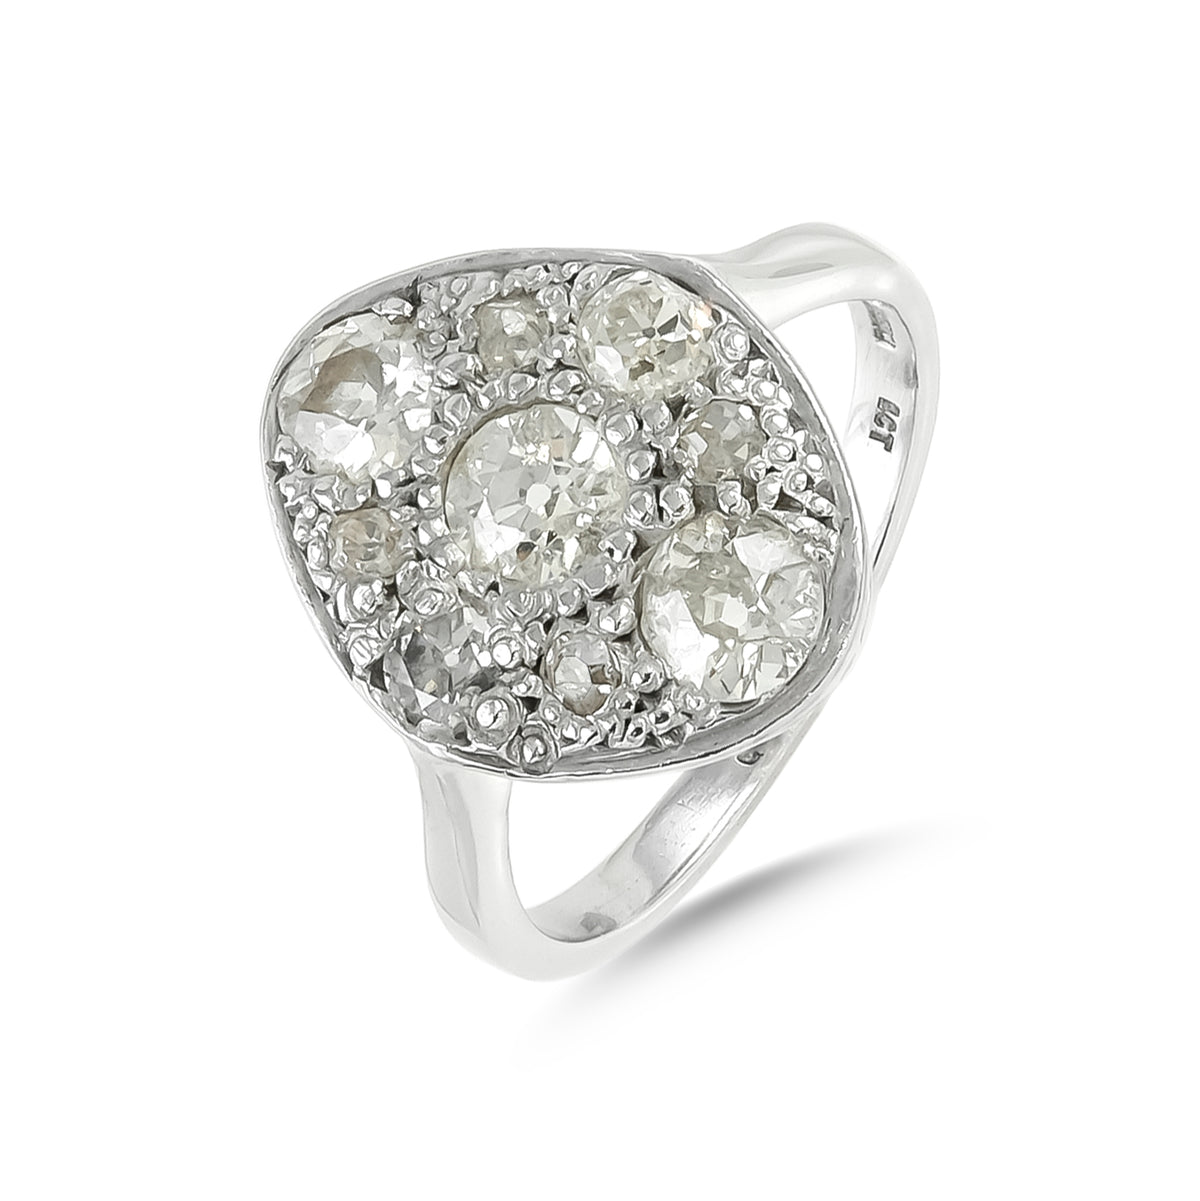 Vintage 18ct White Gold Diamond Cluster Ring